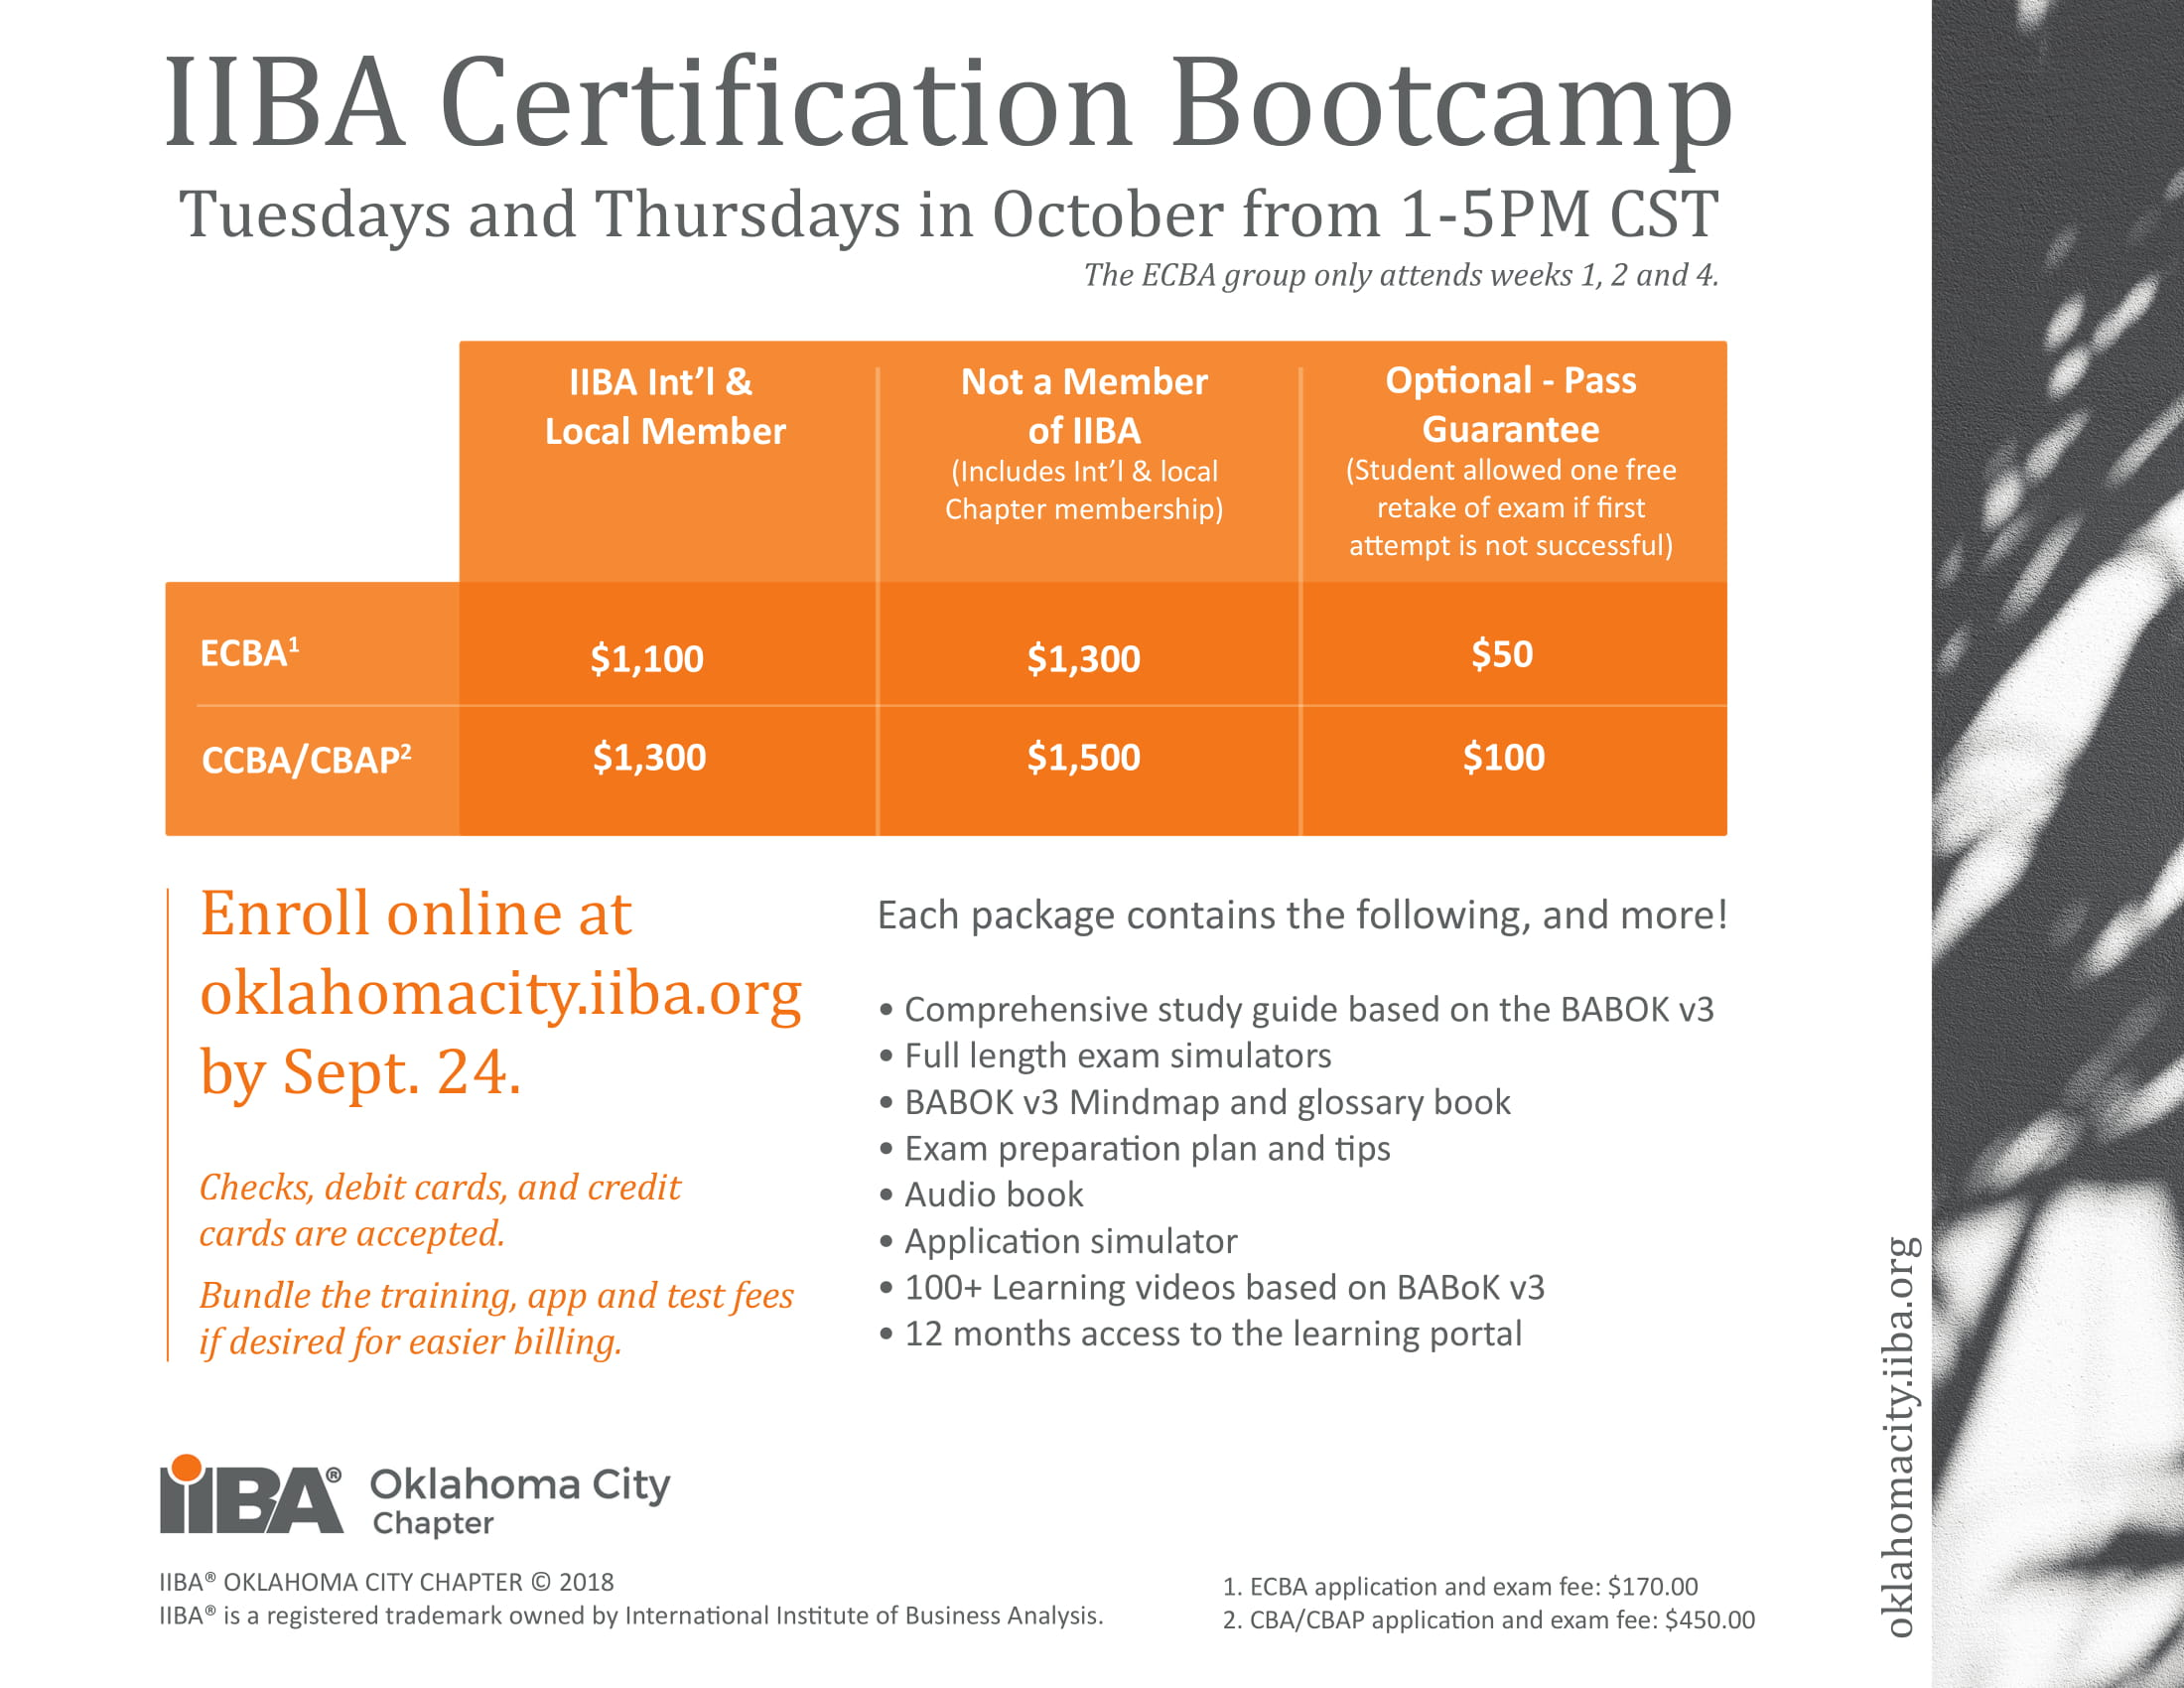 Fall 2018 Iiba Certification Boot Camp Iiba Oklahoma City